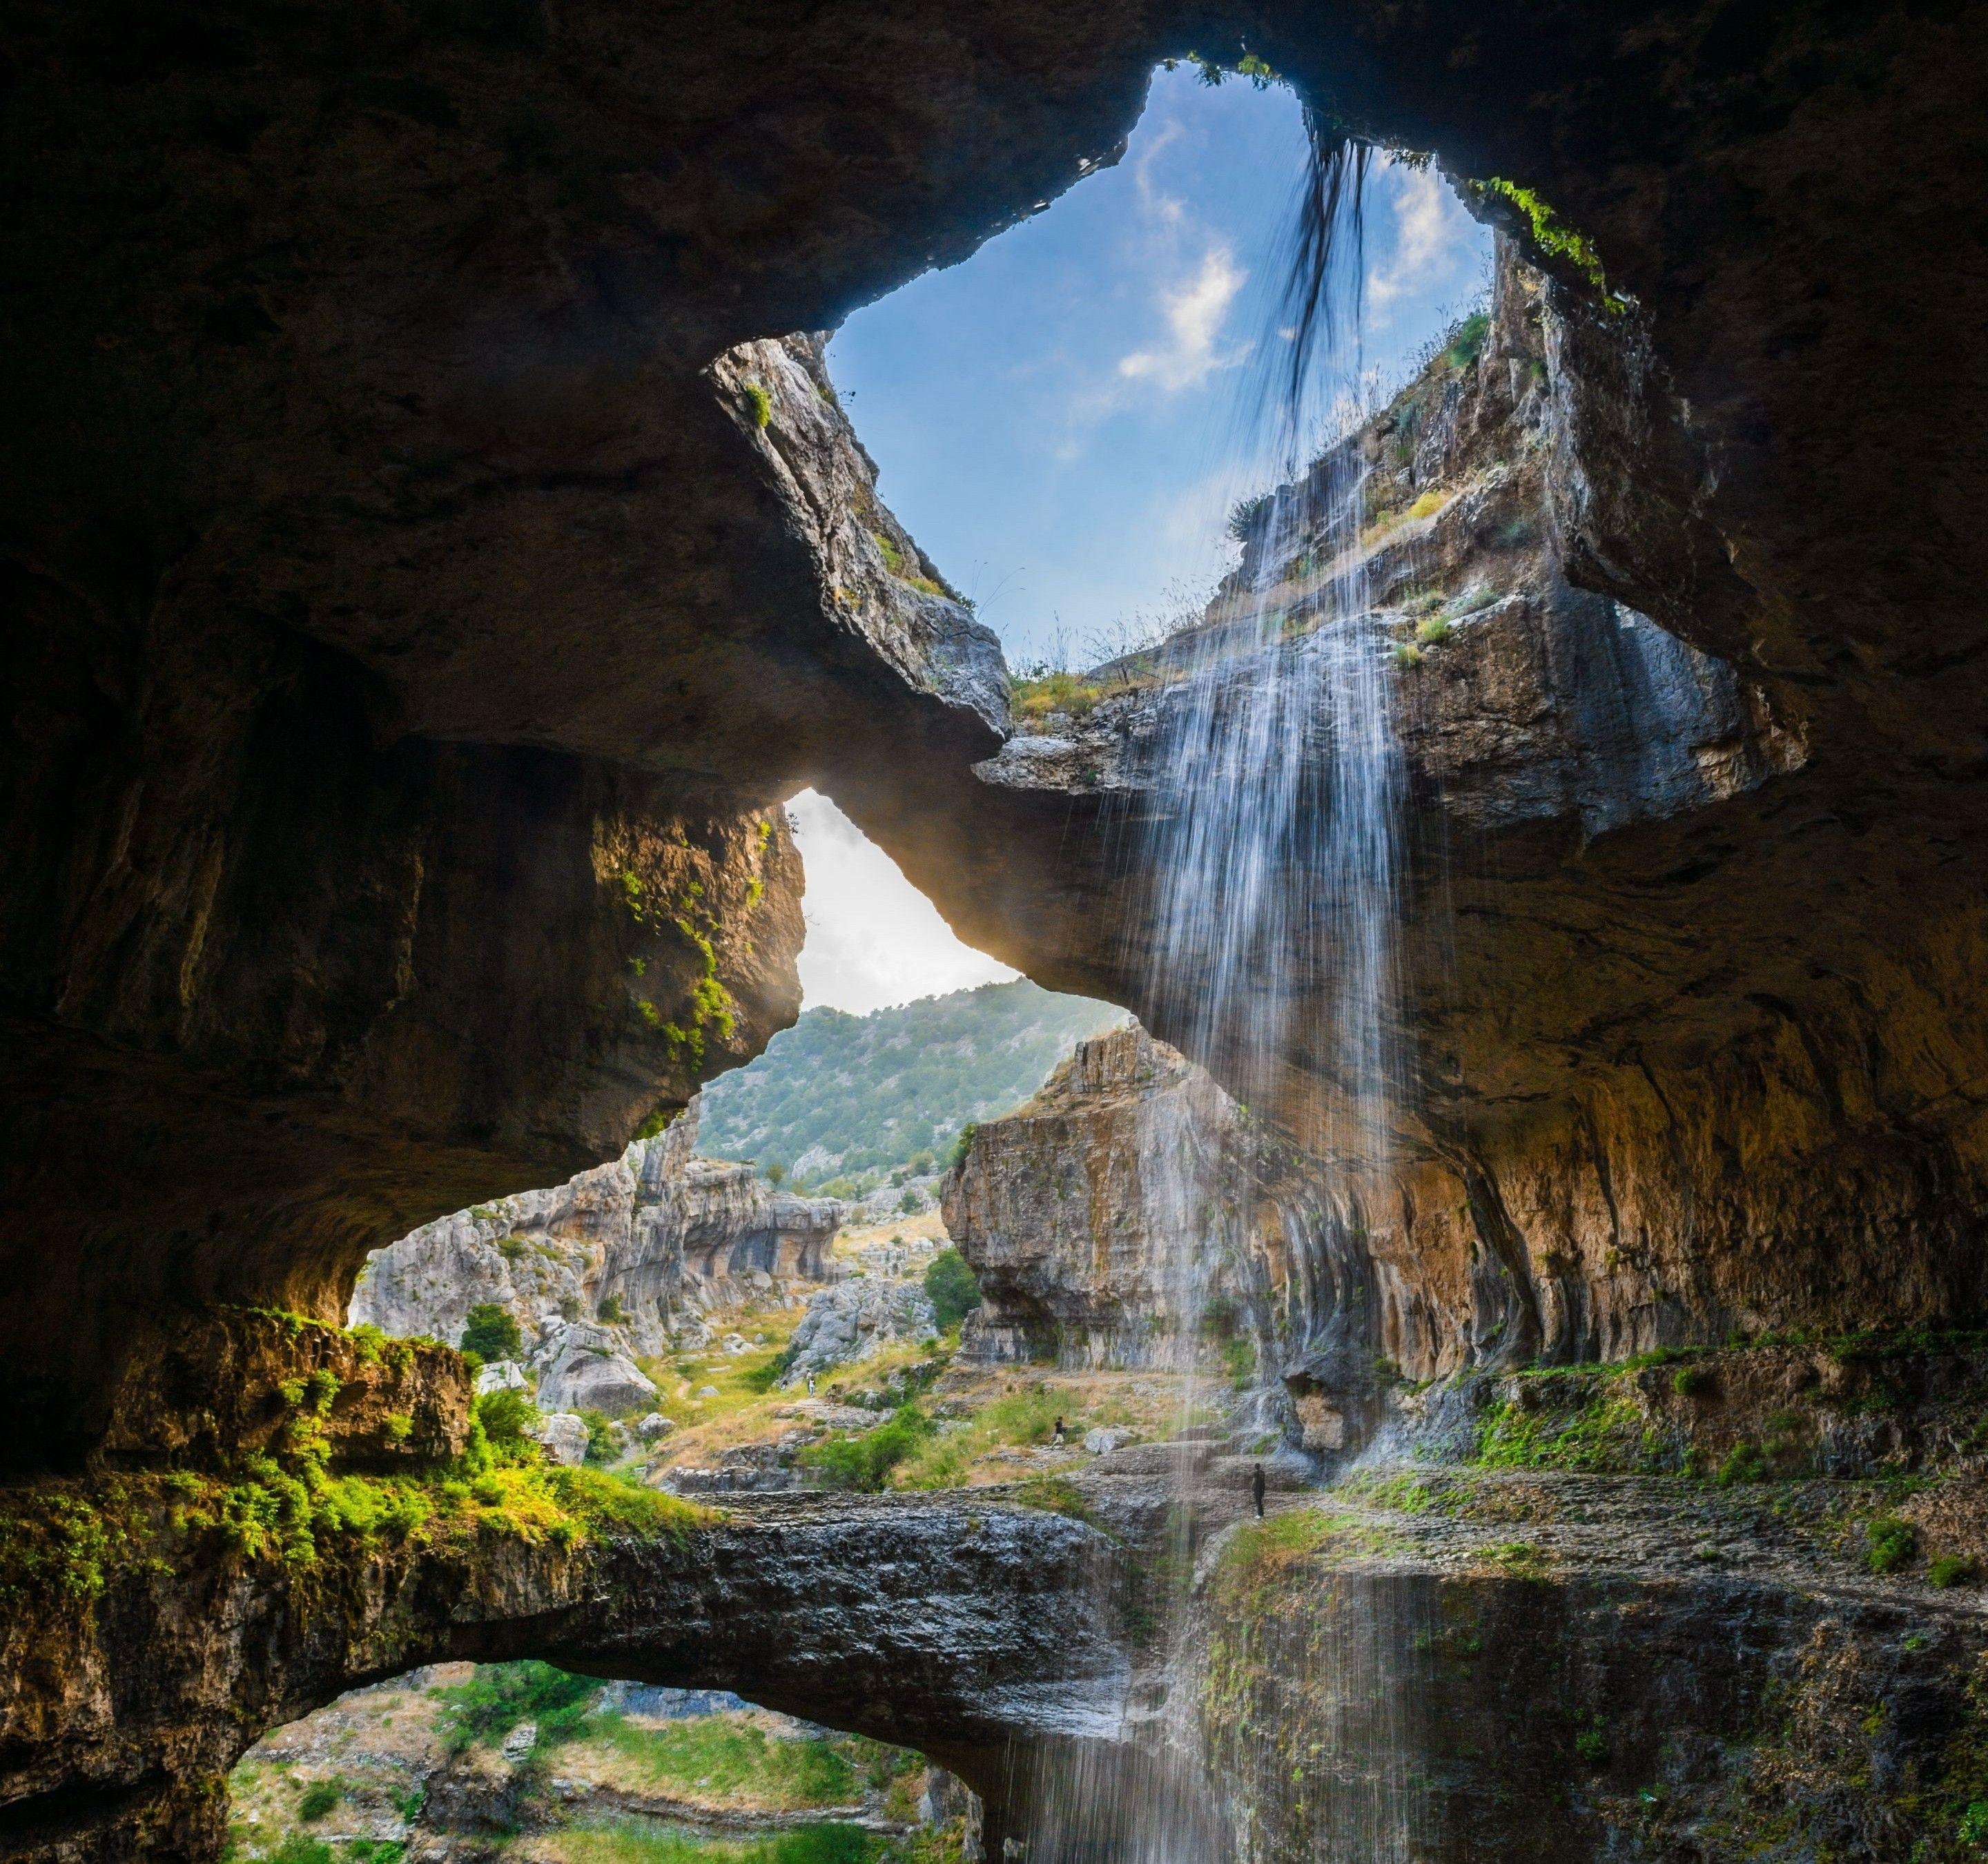 cave, Waterfall, Gorge, Lebanon, Erosion, Nature, Landscape